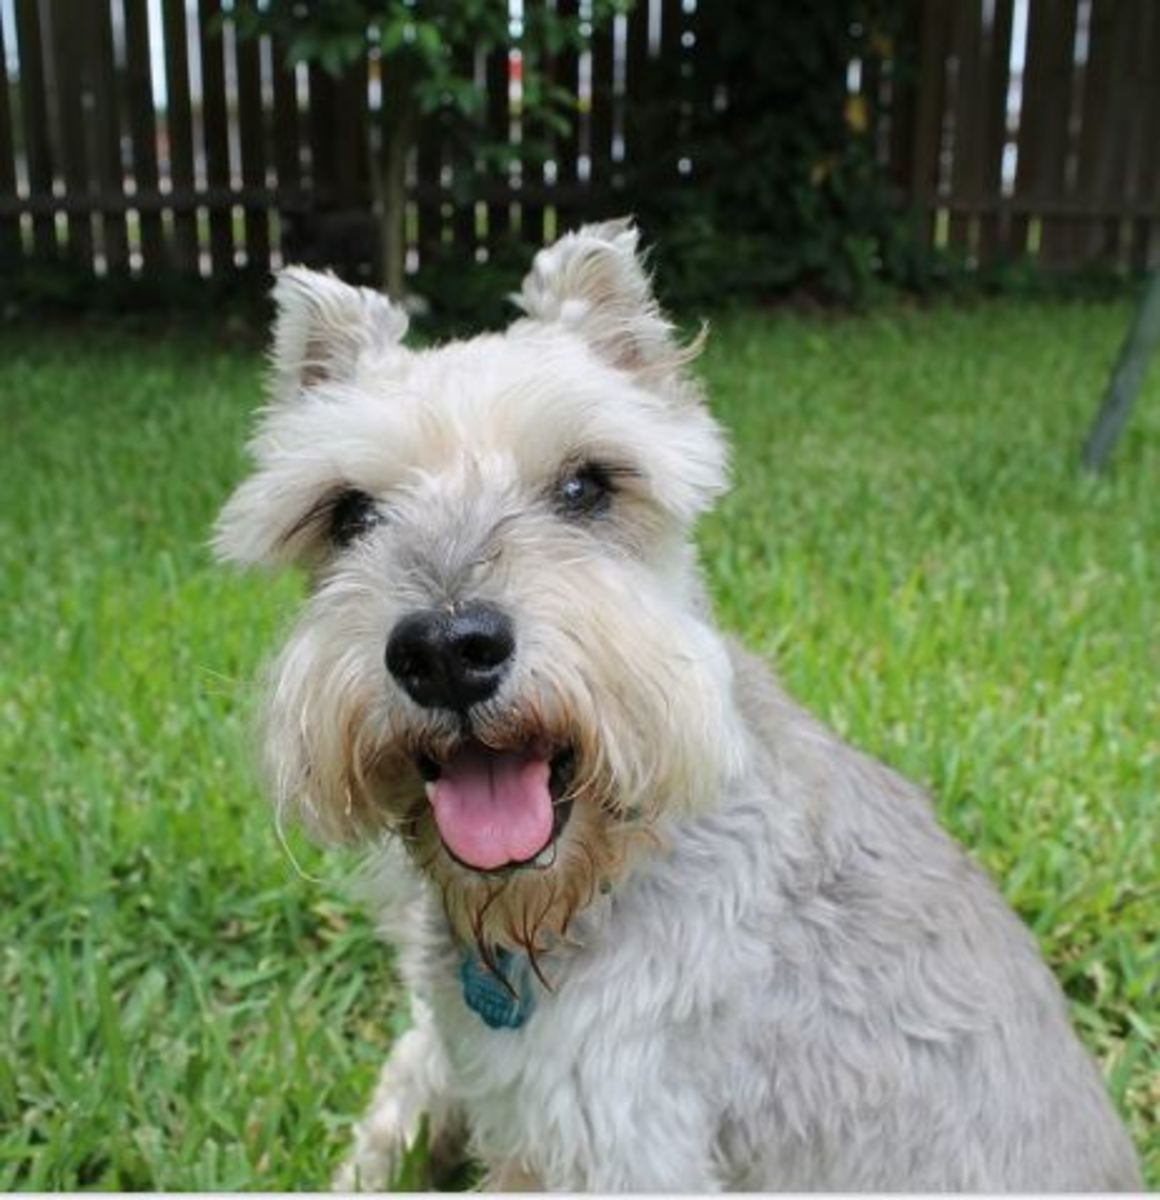 One breed that is at high risk of developing diabetes is the Miniature Schnauzer.